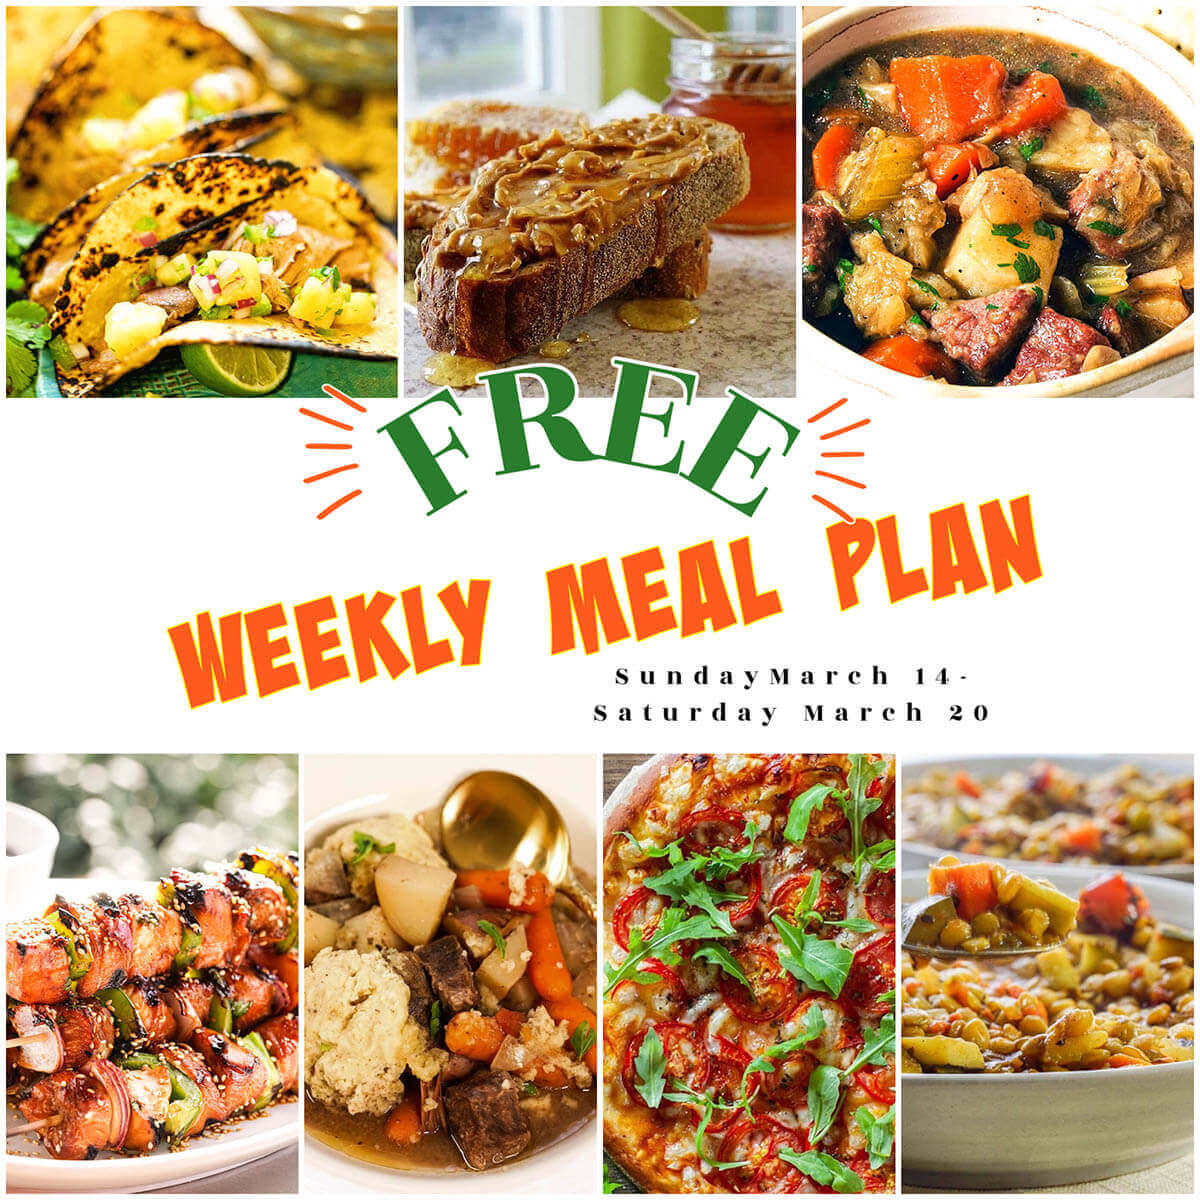 Collage of Recipes showing weekly meal plan for March 14-20. With print overlay.